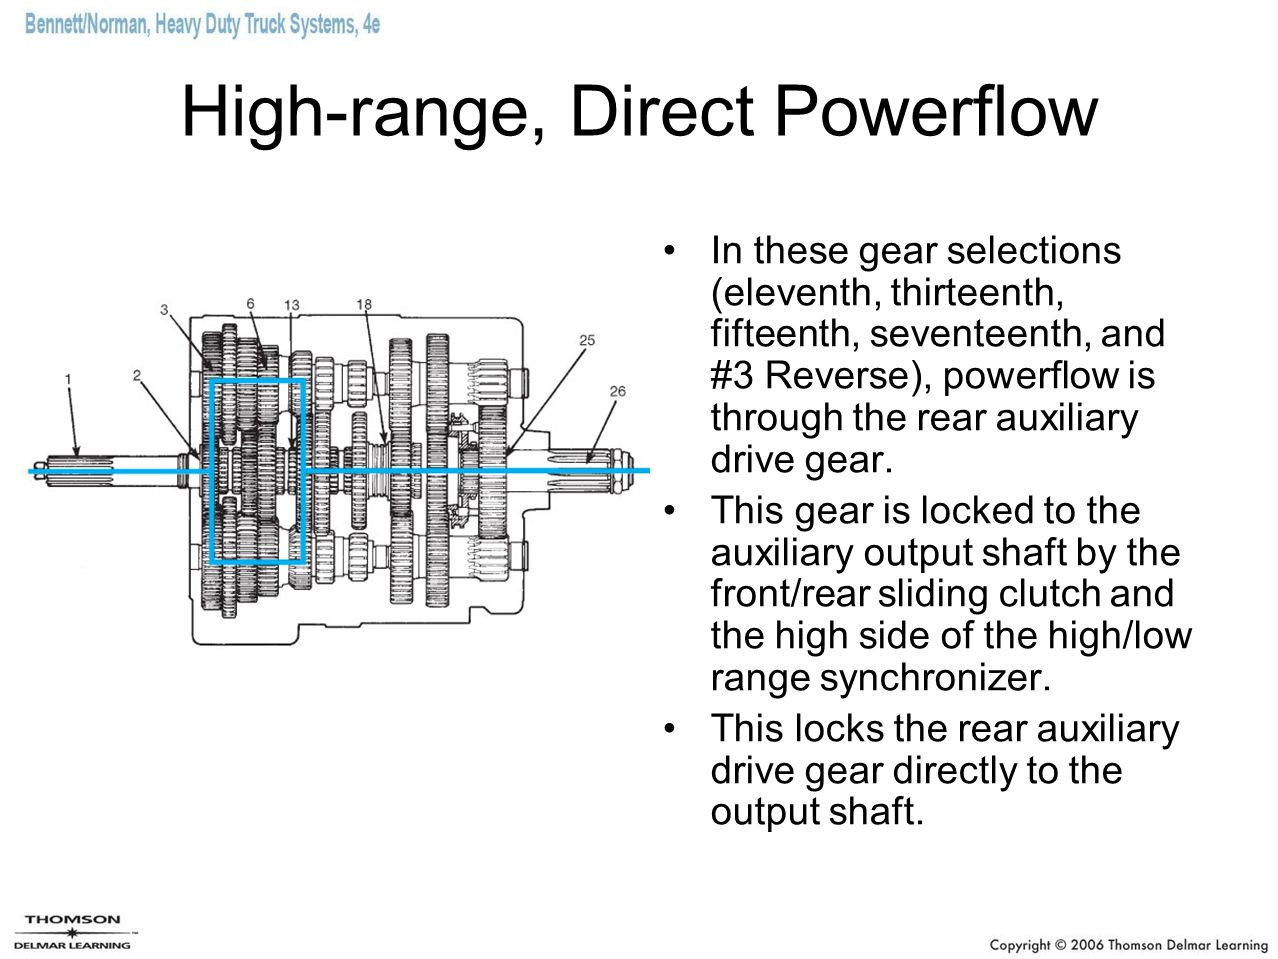 High-range, Direct Powerflow